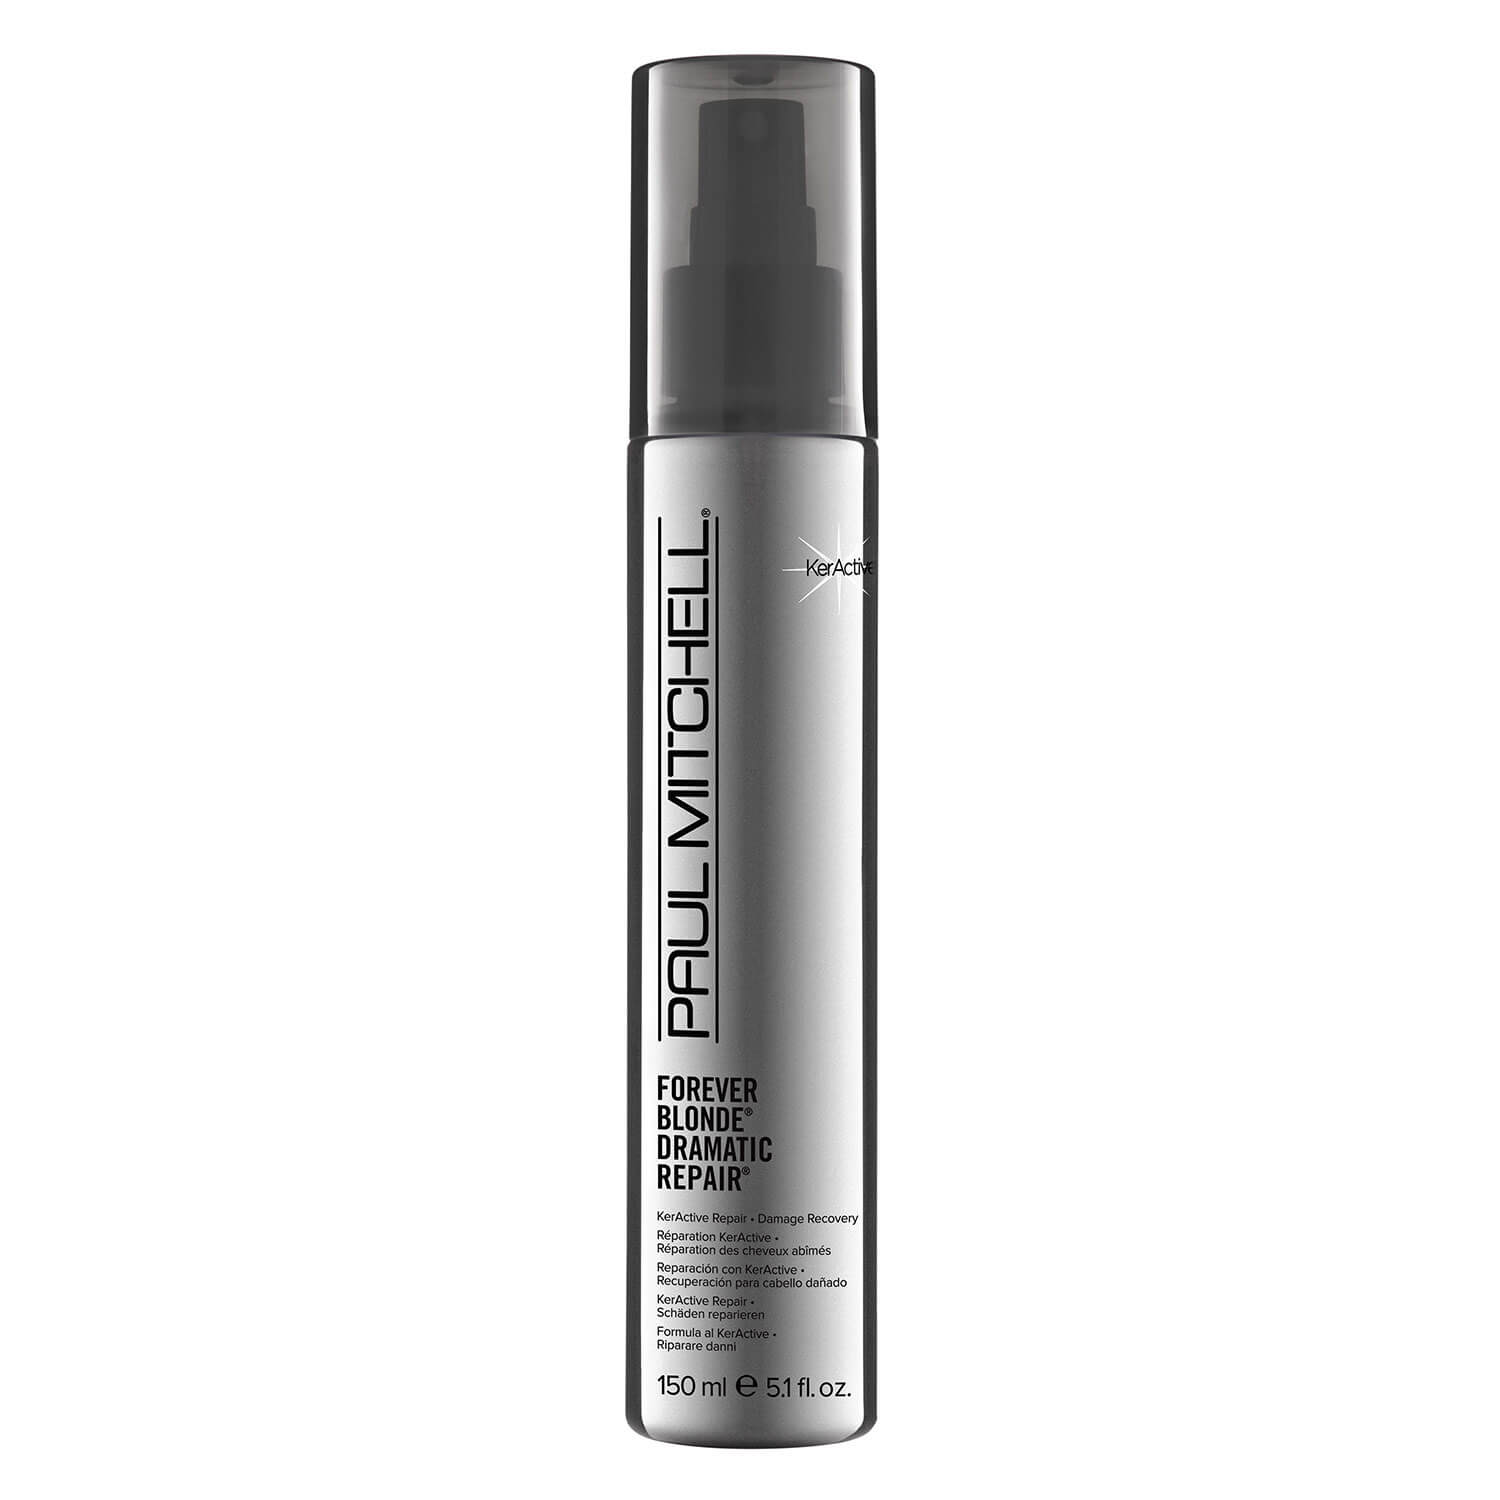 Blonde - Forever Blonde Dramatic Repair